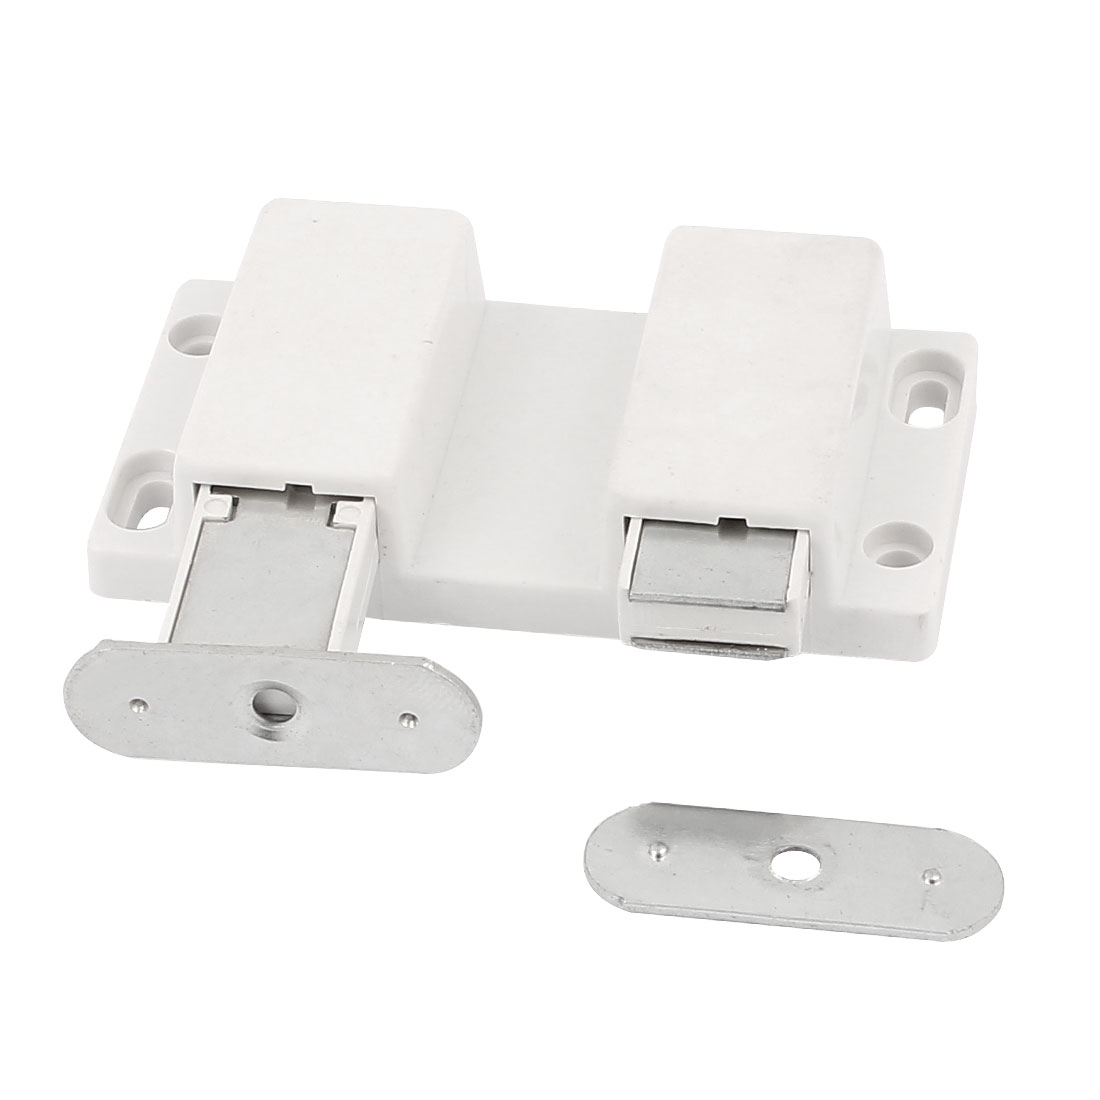 Double Head Magnetic Catch Latch White for Cabinet Glass Shelf Table Doors